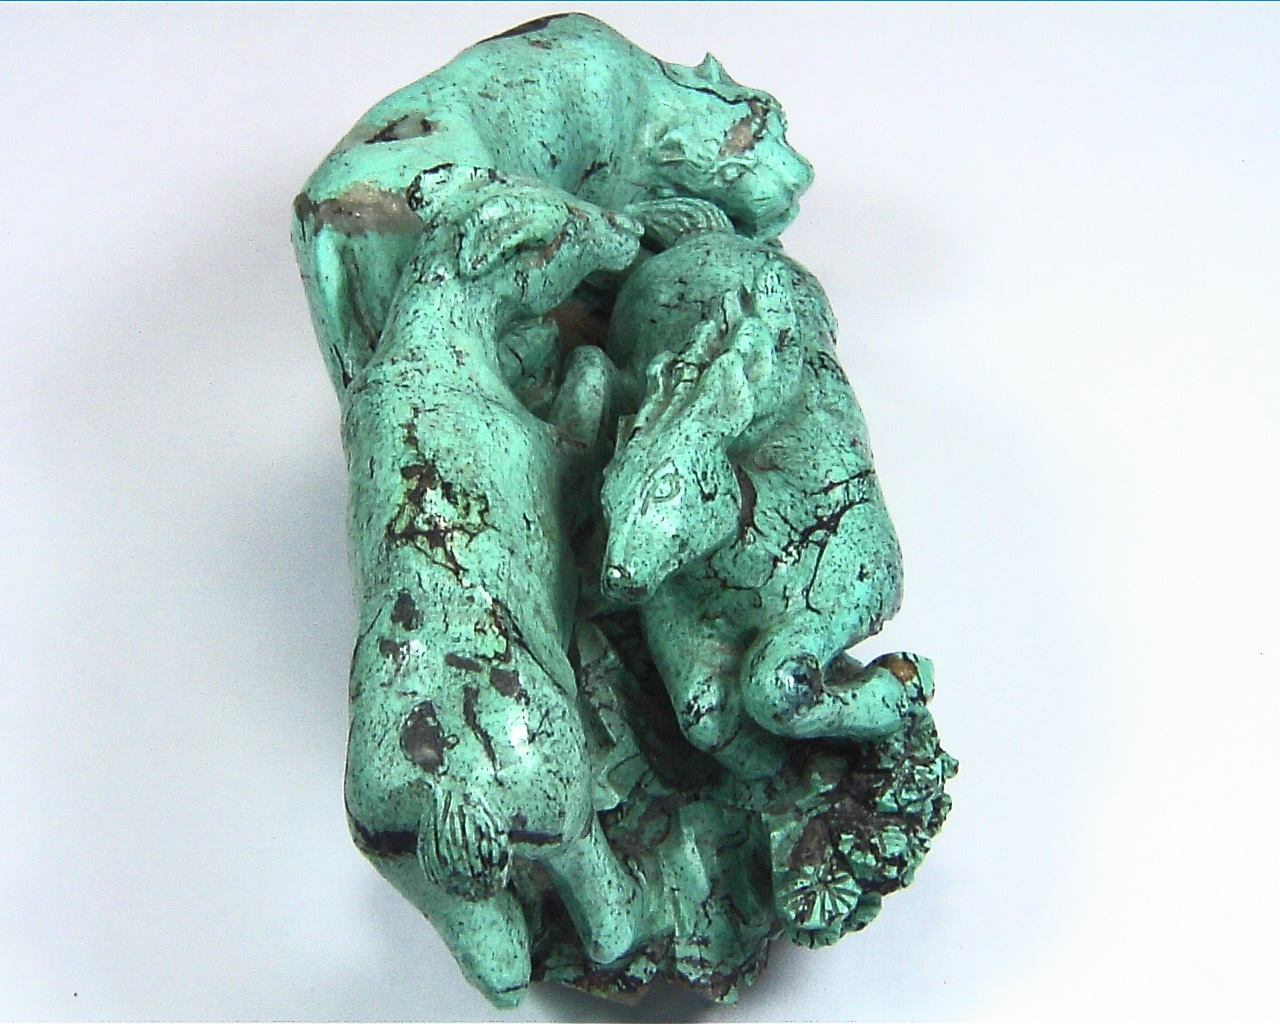 Turquoise Natural Genuine Gemstone Carved Lion Chasing a Bow in a Sculpture 9